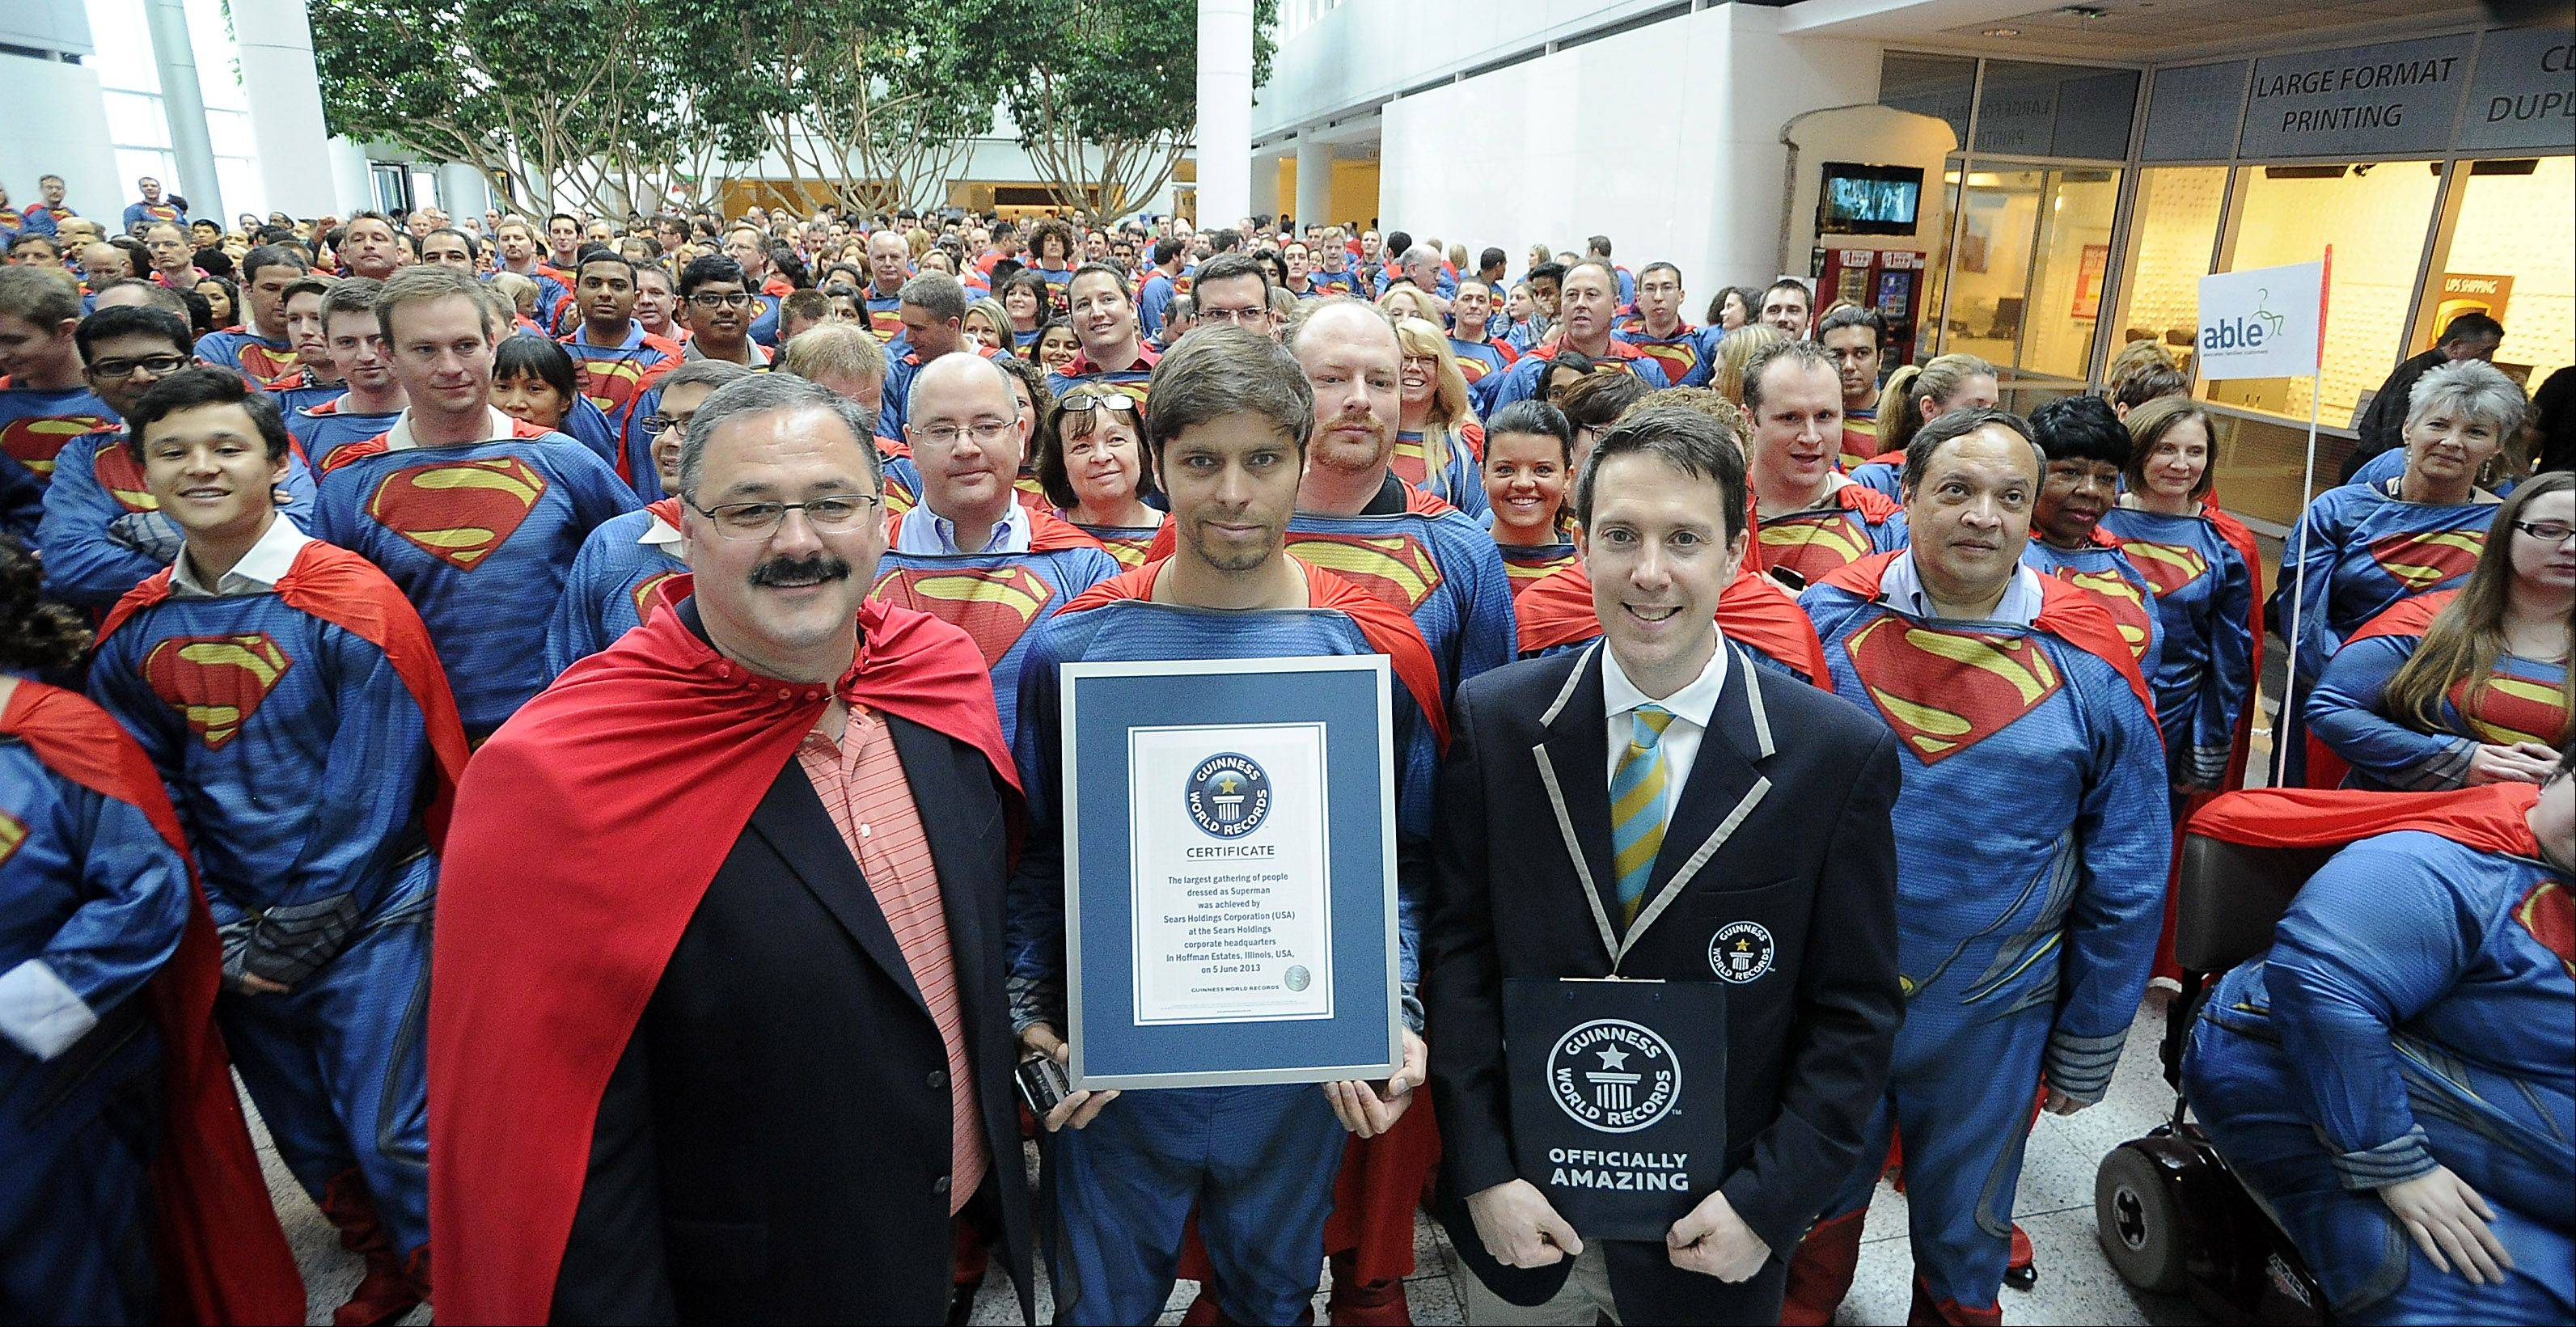 Sears employees dress up like Superman, set world record